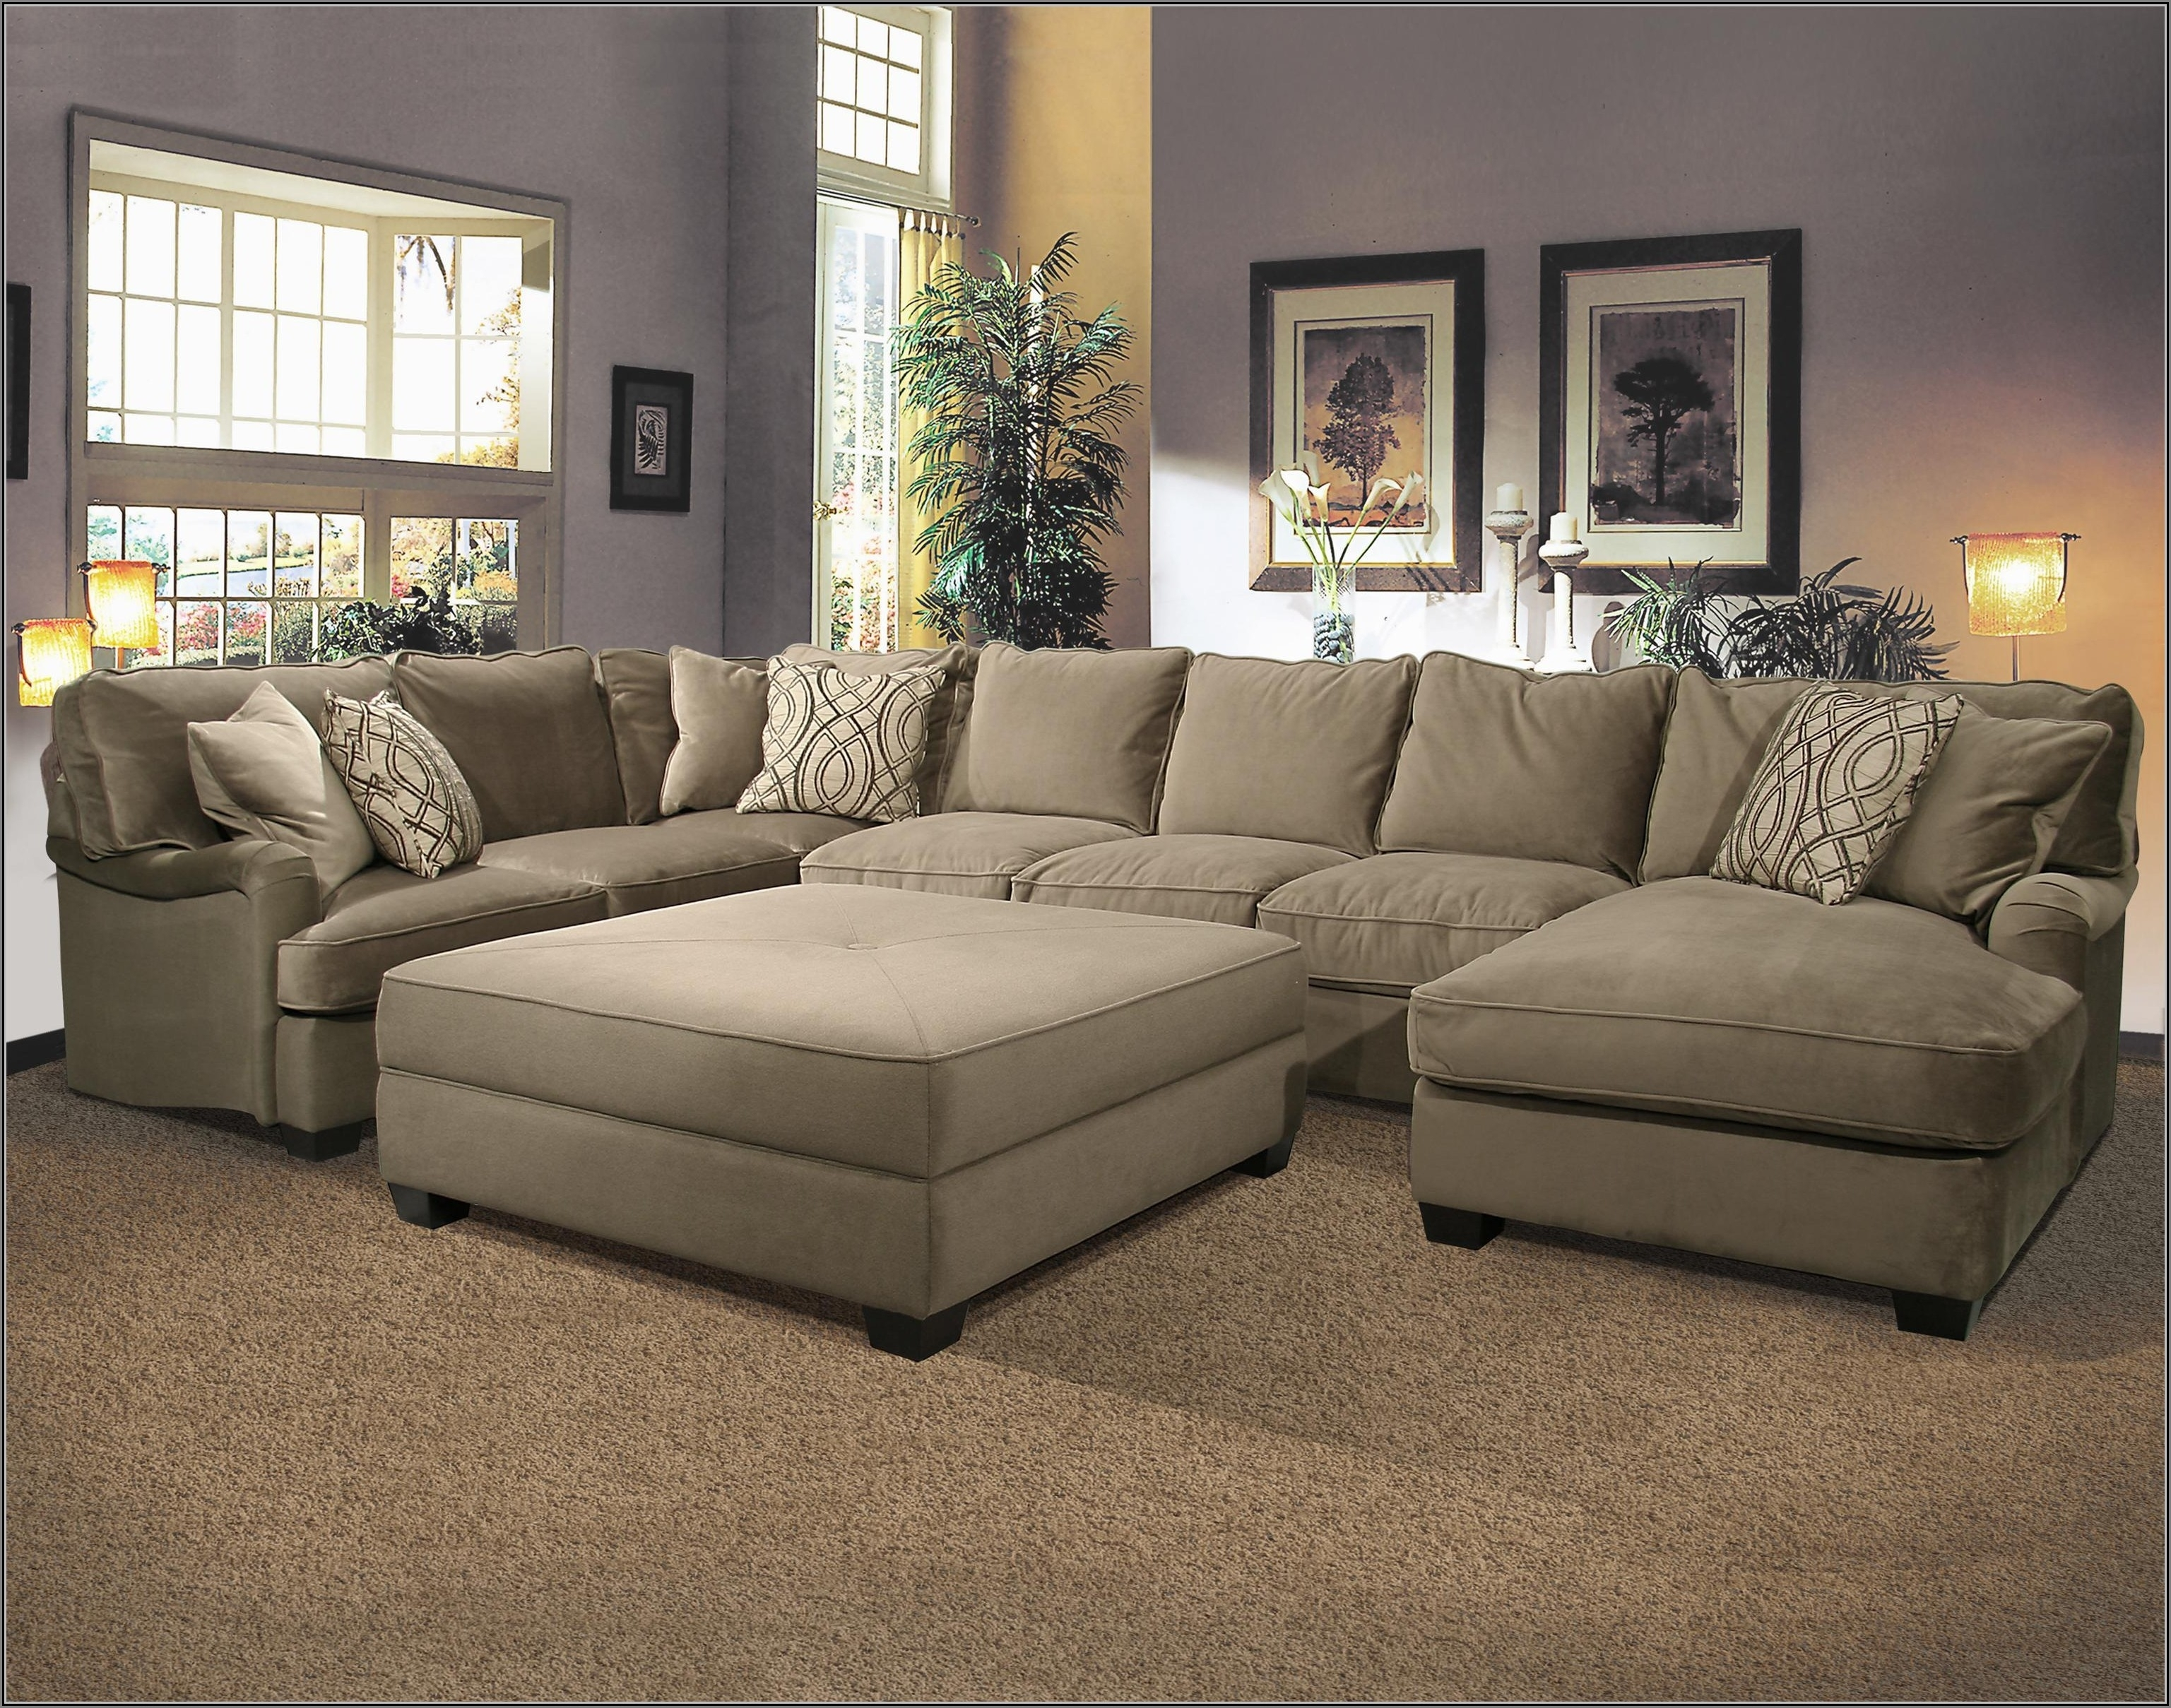 U Couch 15 Best Collection Of Big U Shaped Couches